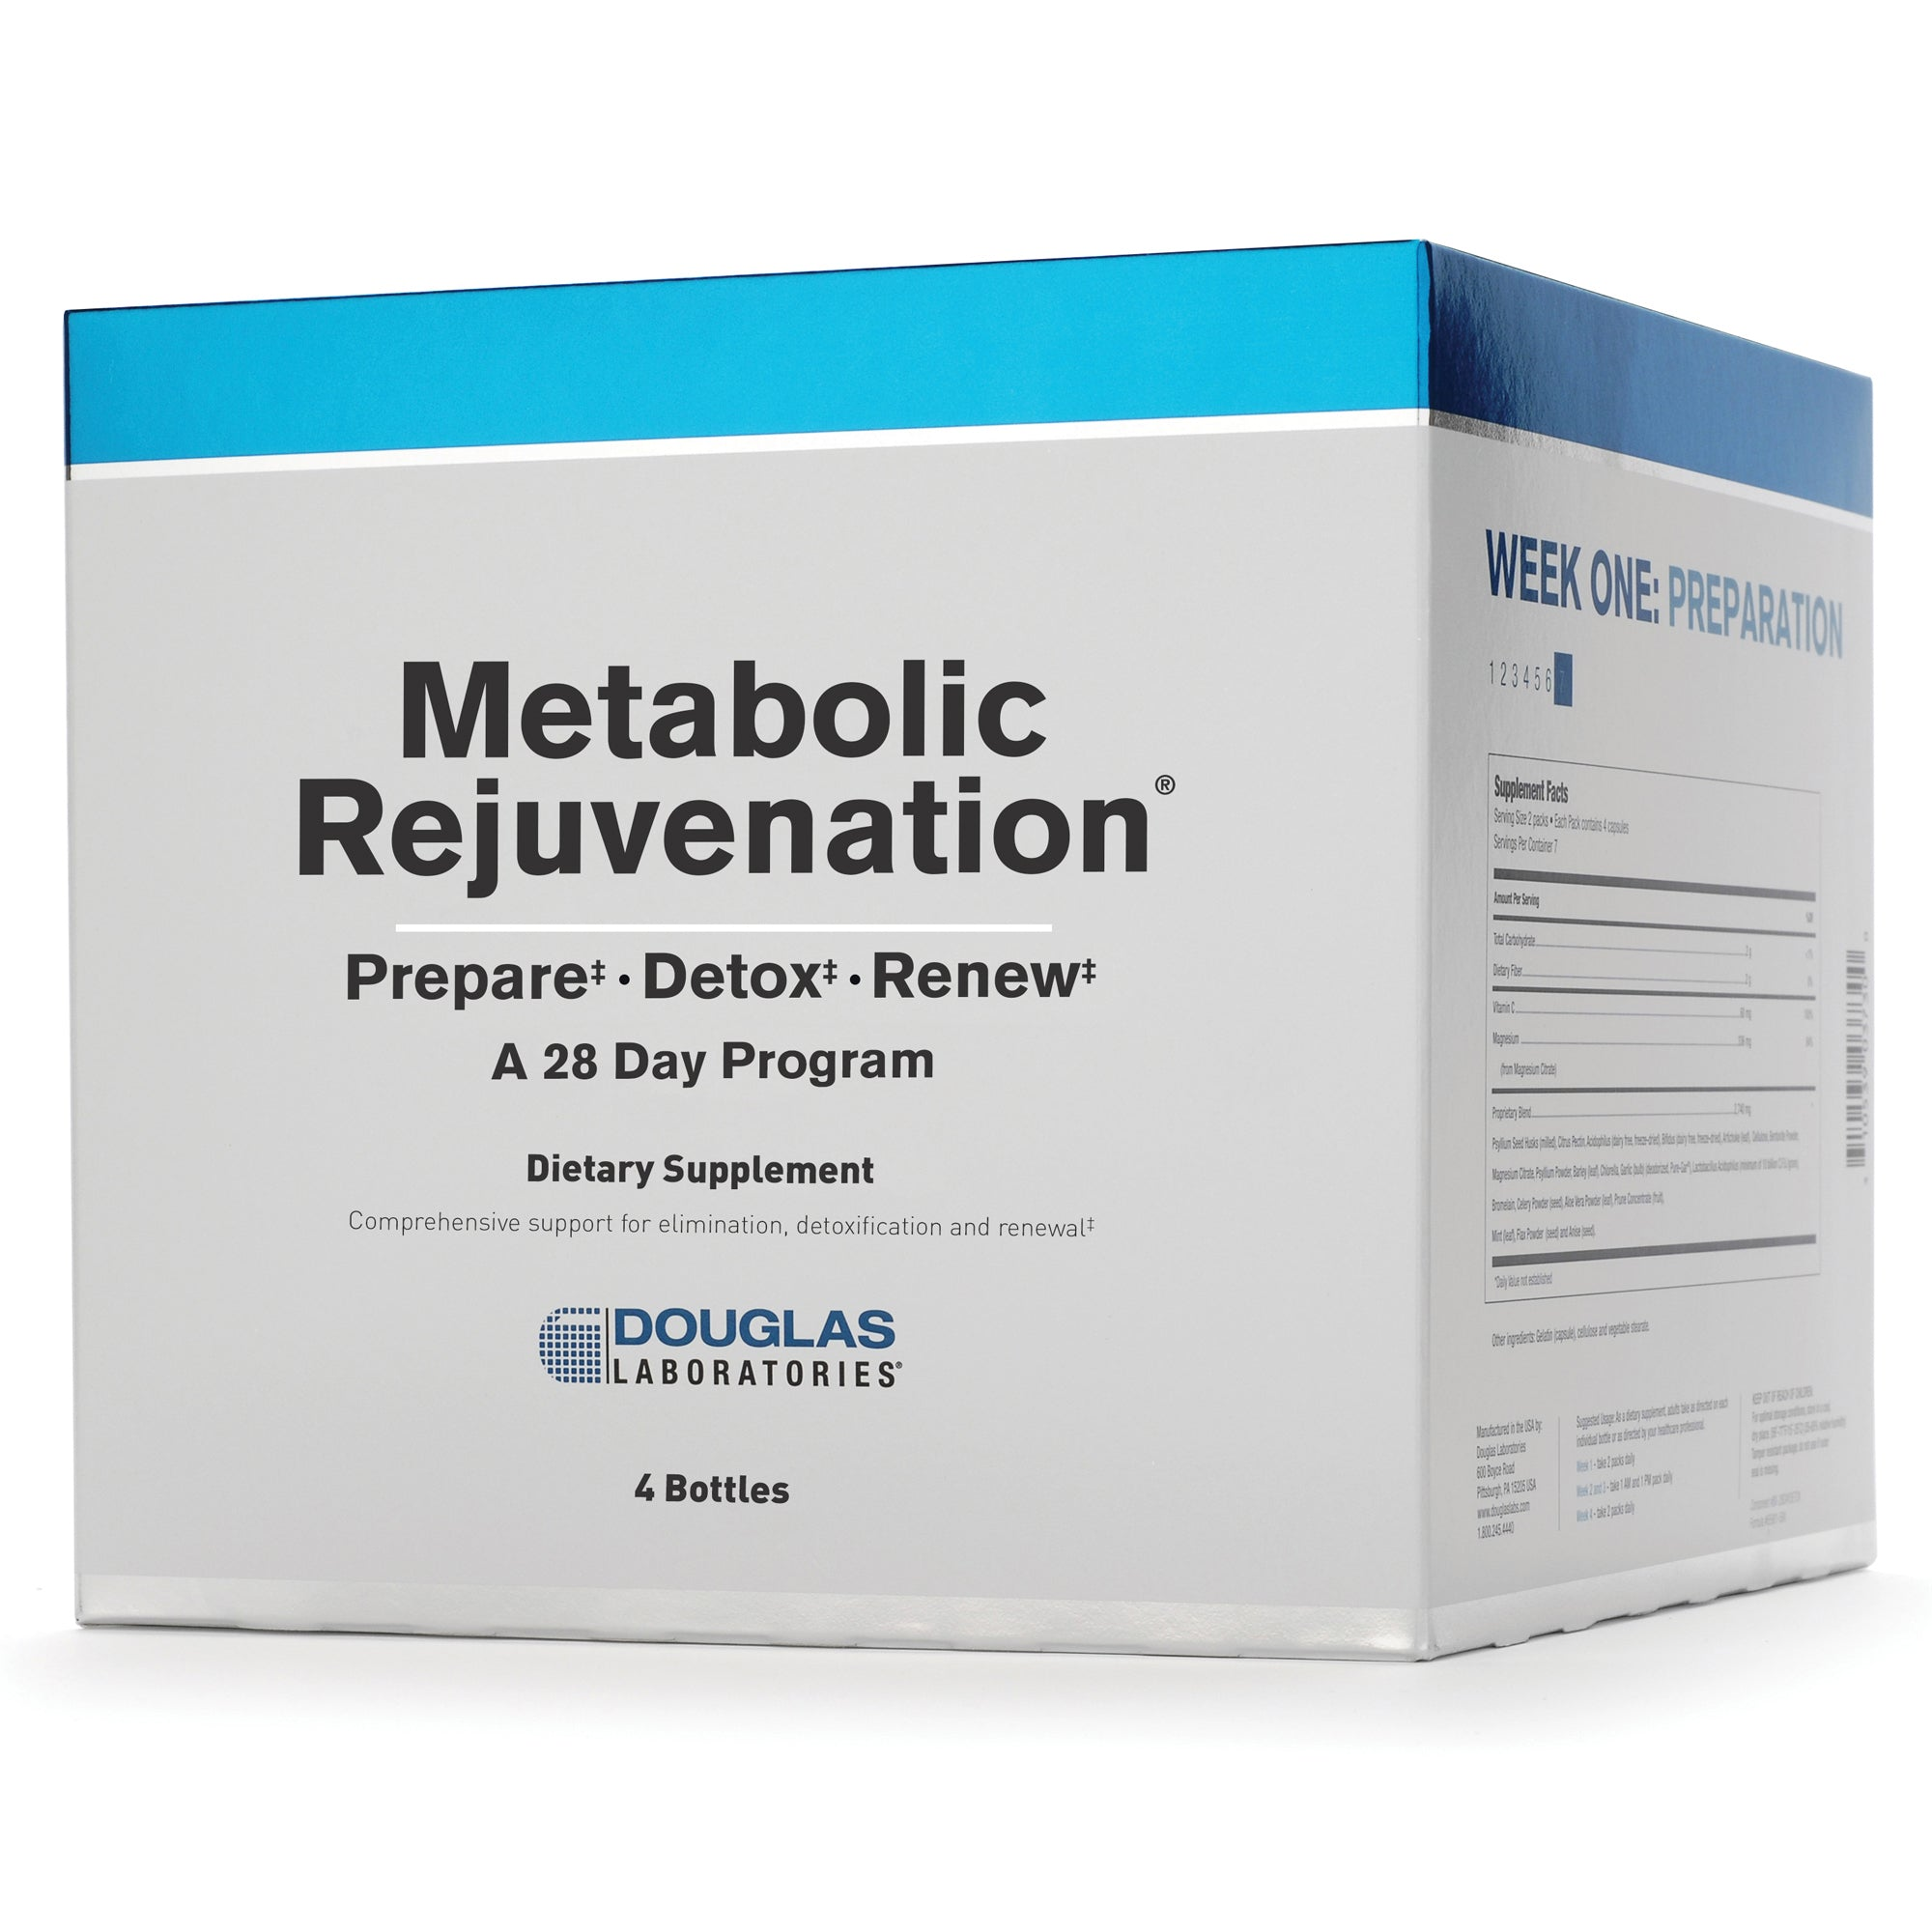 Metabolic Rejuvenation Program 4 bottles Douglas Labs